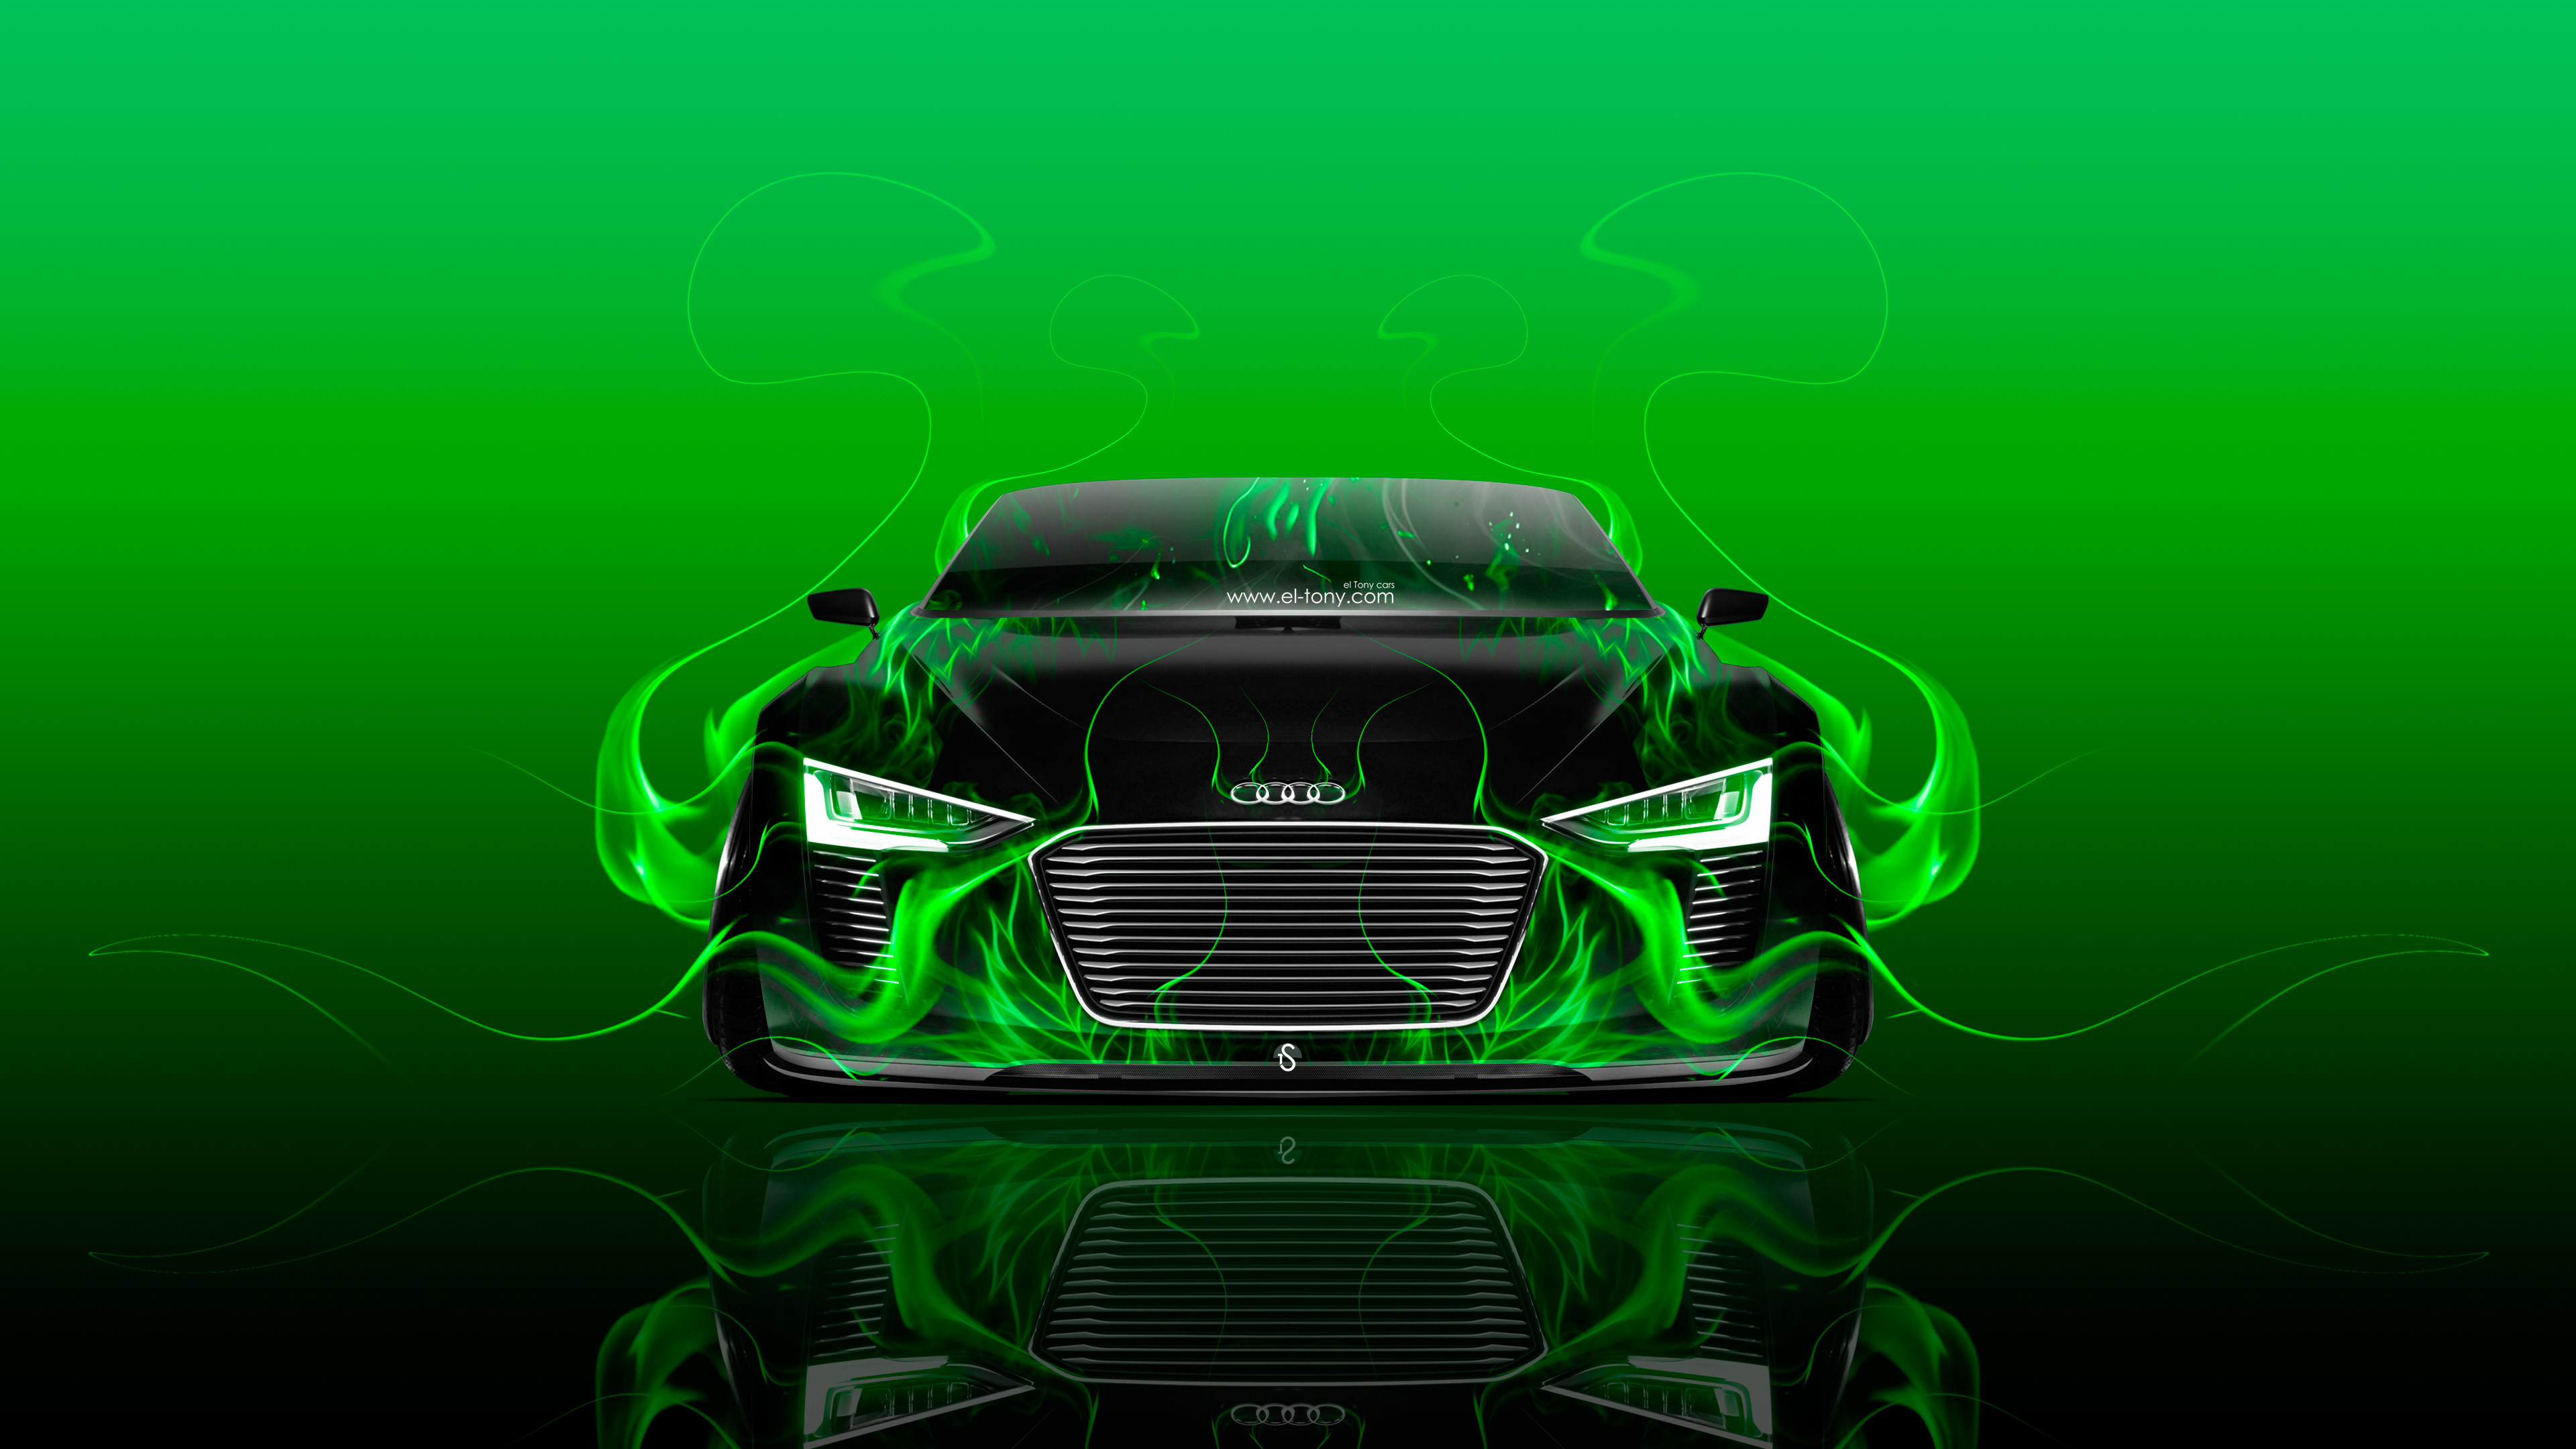 3840x2160 ... Audi-e-tron-Spyder-Front-Fire-Abstract-Car- ...